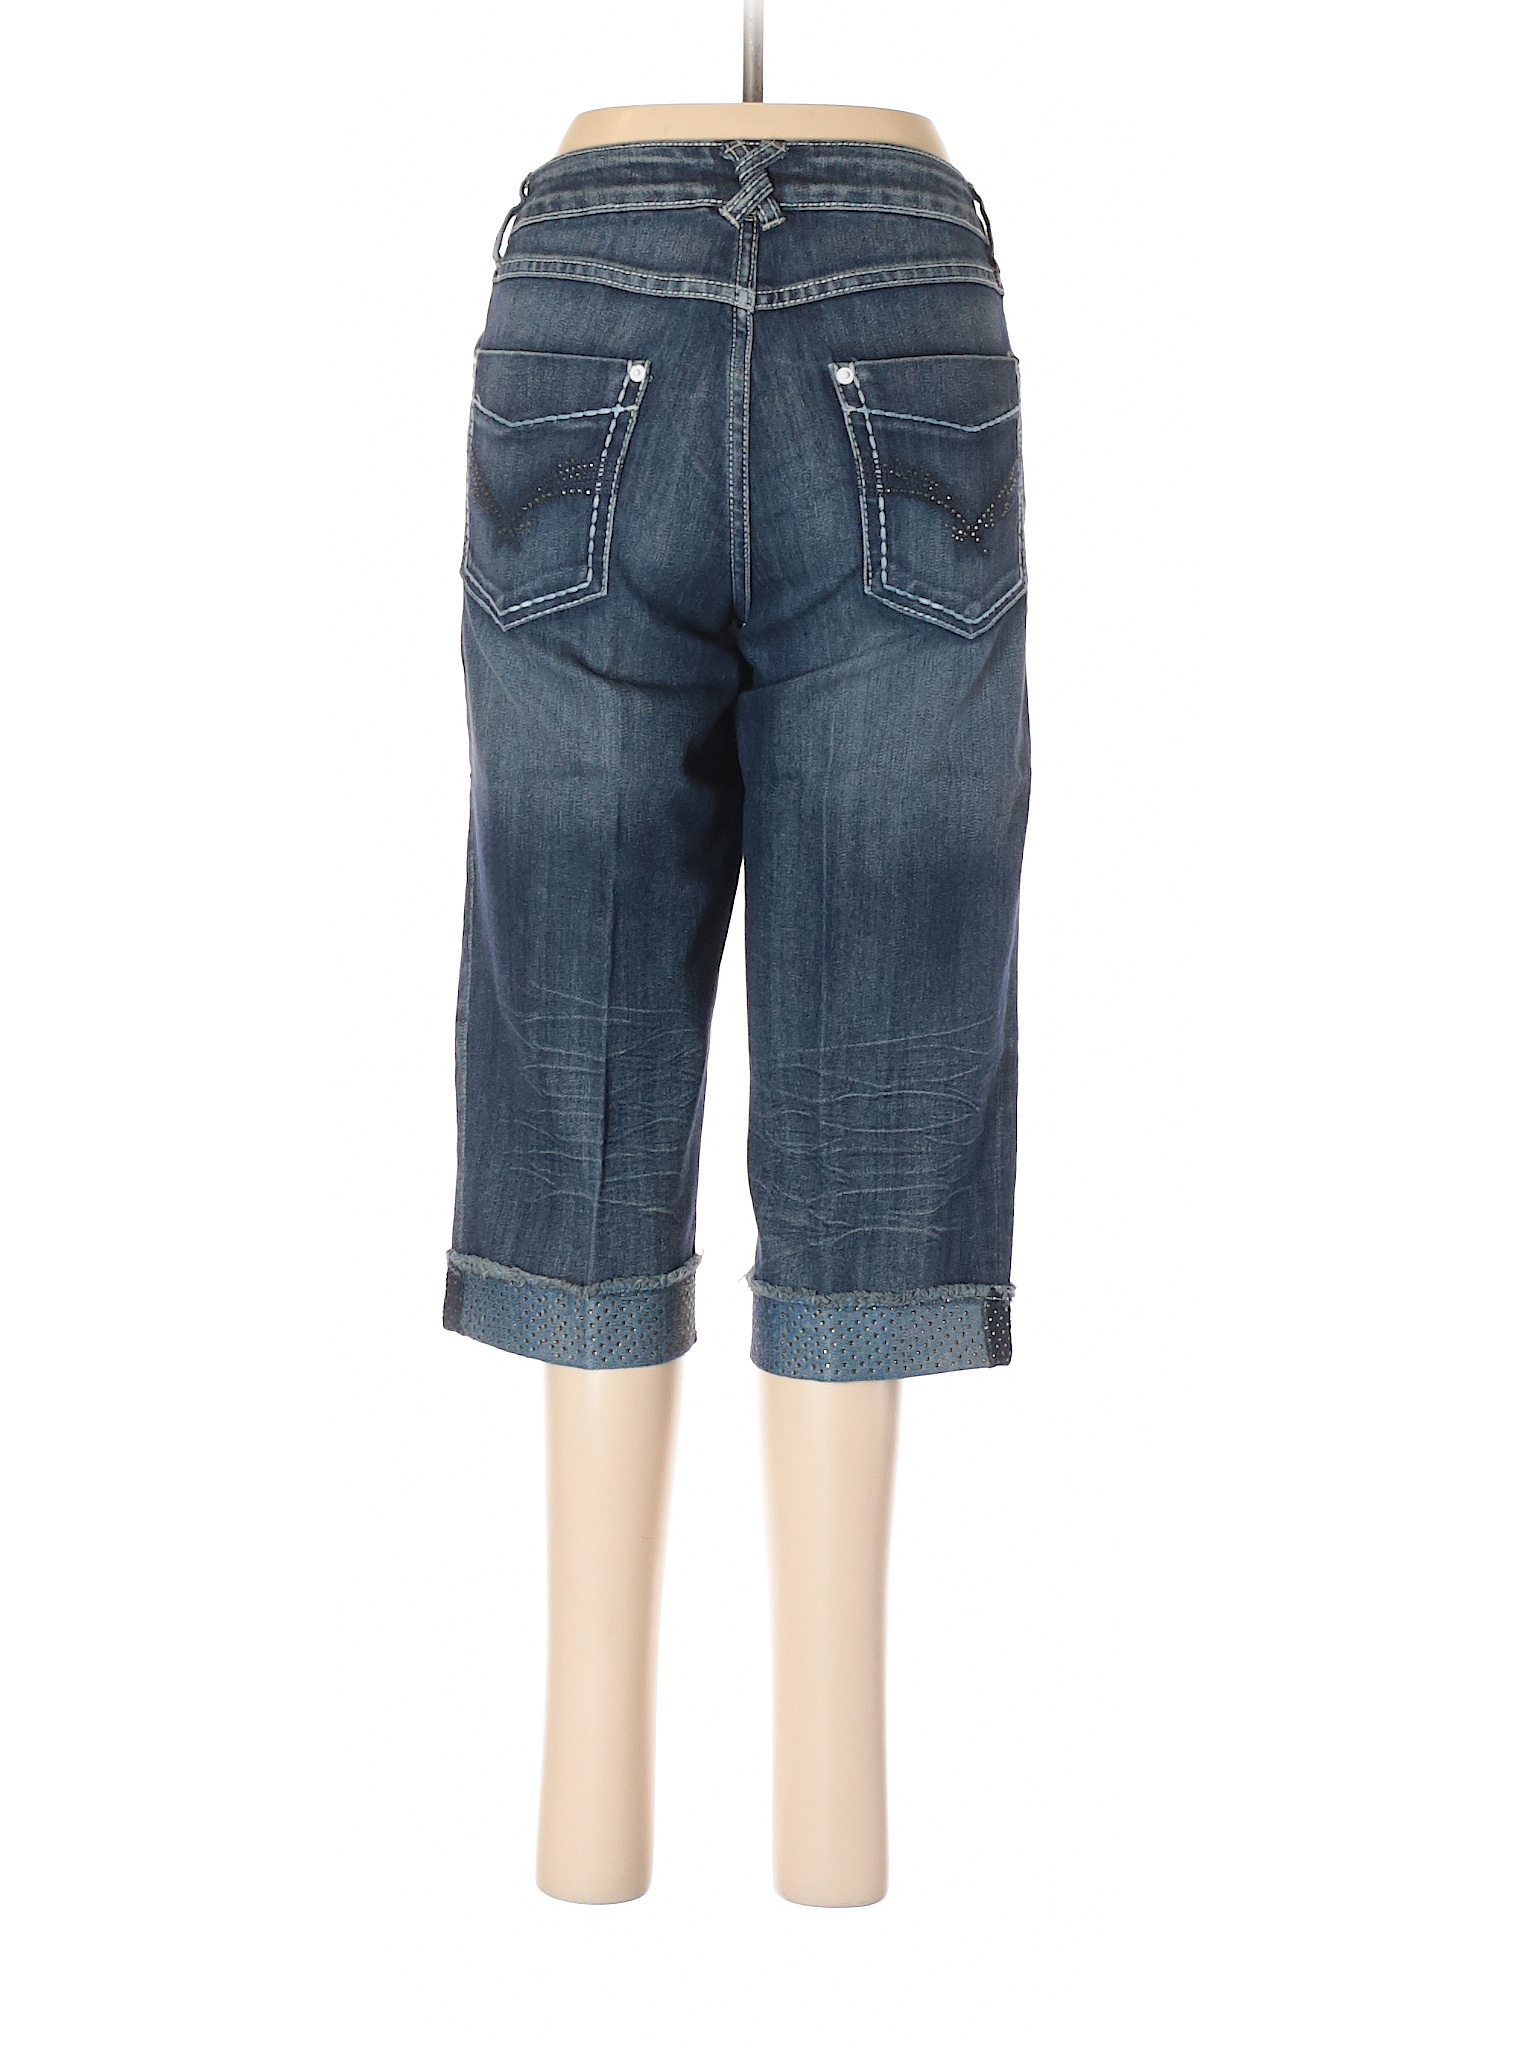 da5a5ca2 Jeans | Products | Jeans, Dark blue jeans, Jeans size